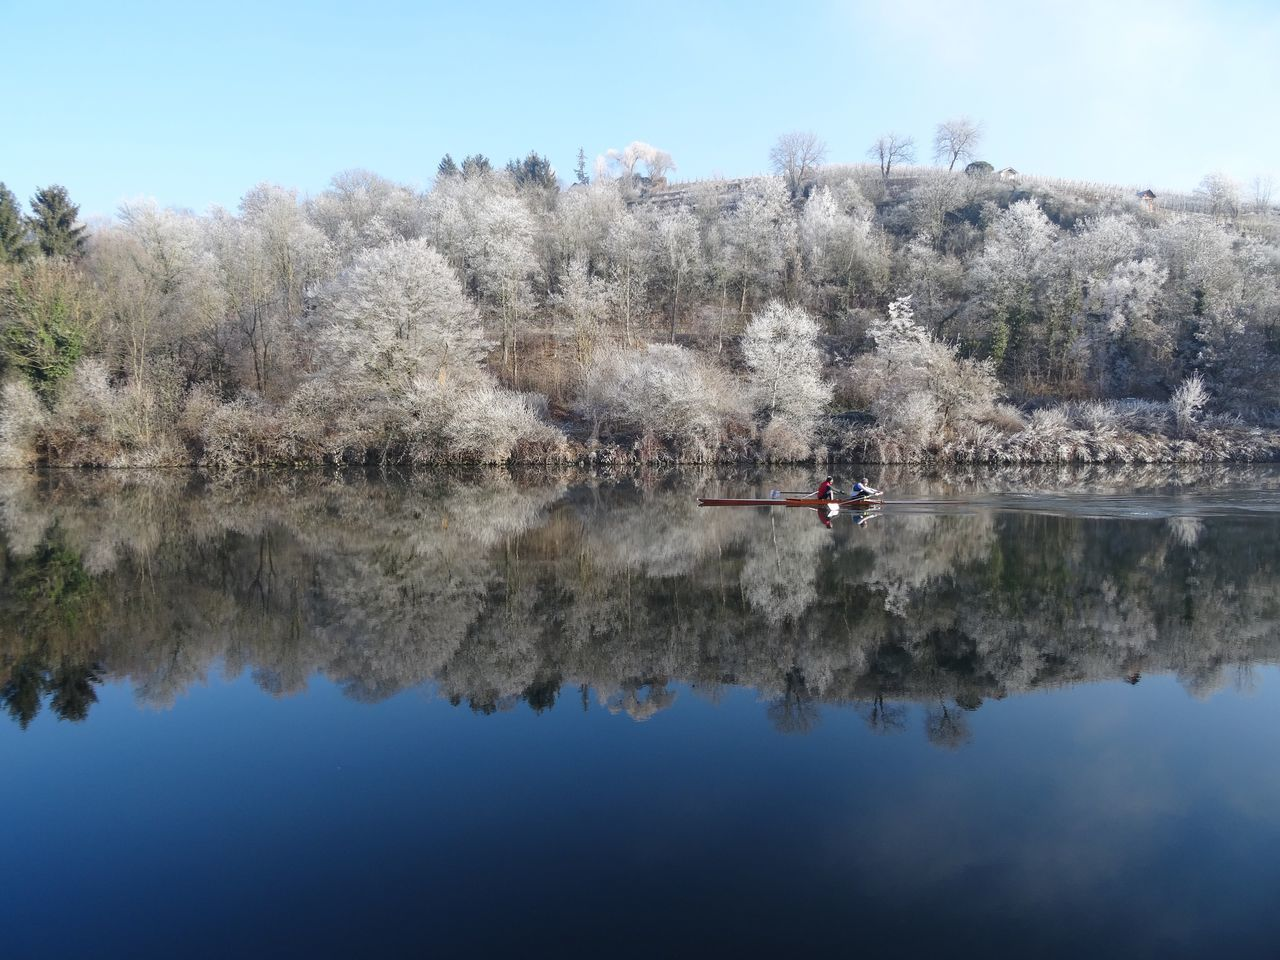 Tree Water Nature Reflection Outdoors Growth Scenics Lake Beauty In Nature Leisure Activity Branch No People Winter Wonderland Cold Temperature Kayaking In Nature Standing Water Neckar River Symmetry White Frost Snow Germany Sport Rowing Winter Sport Team